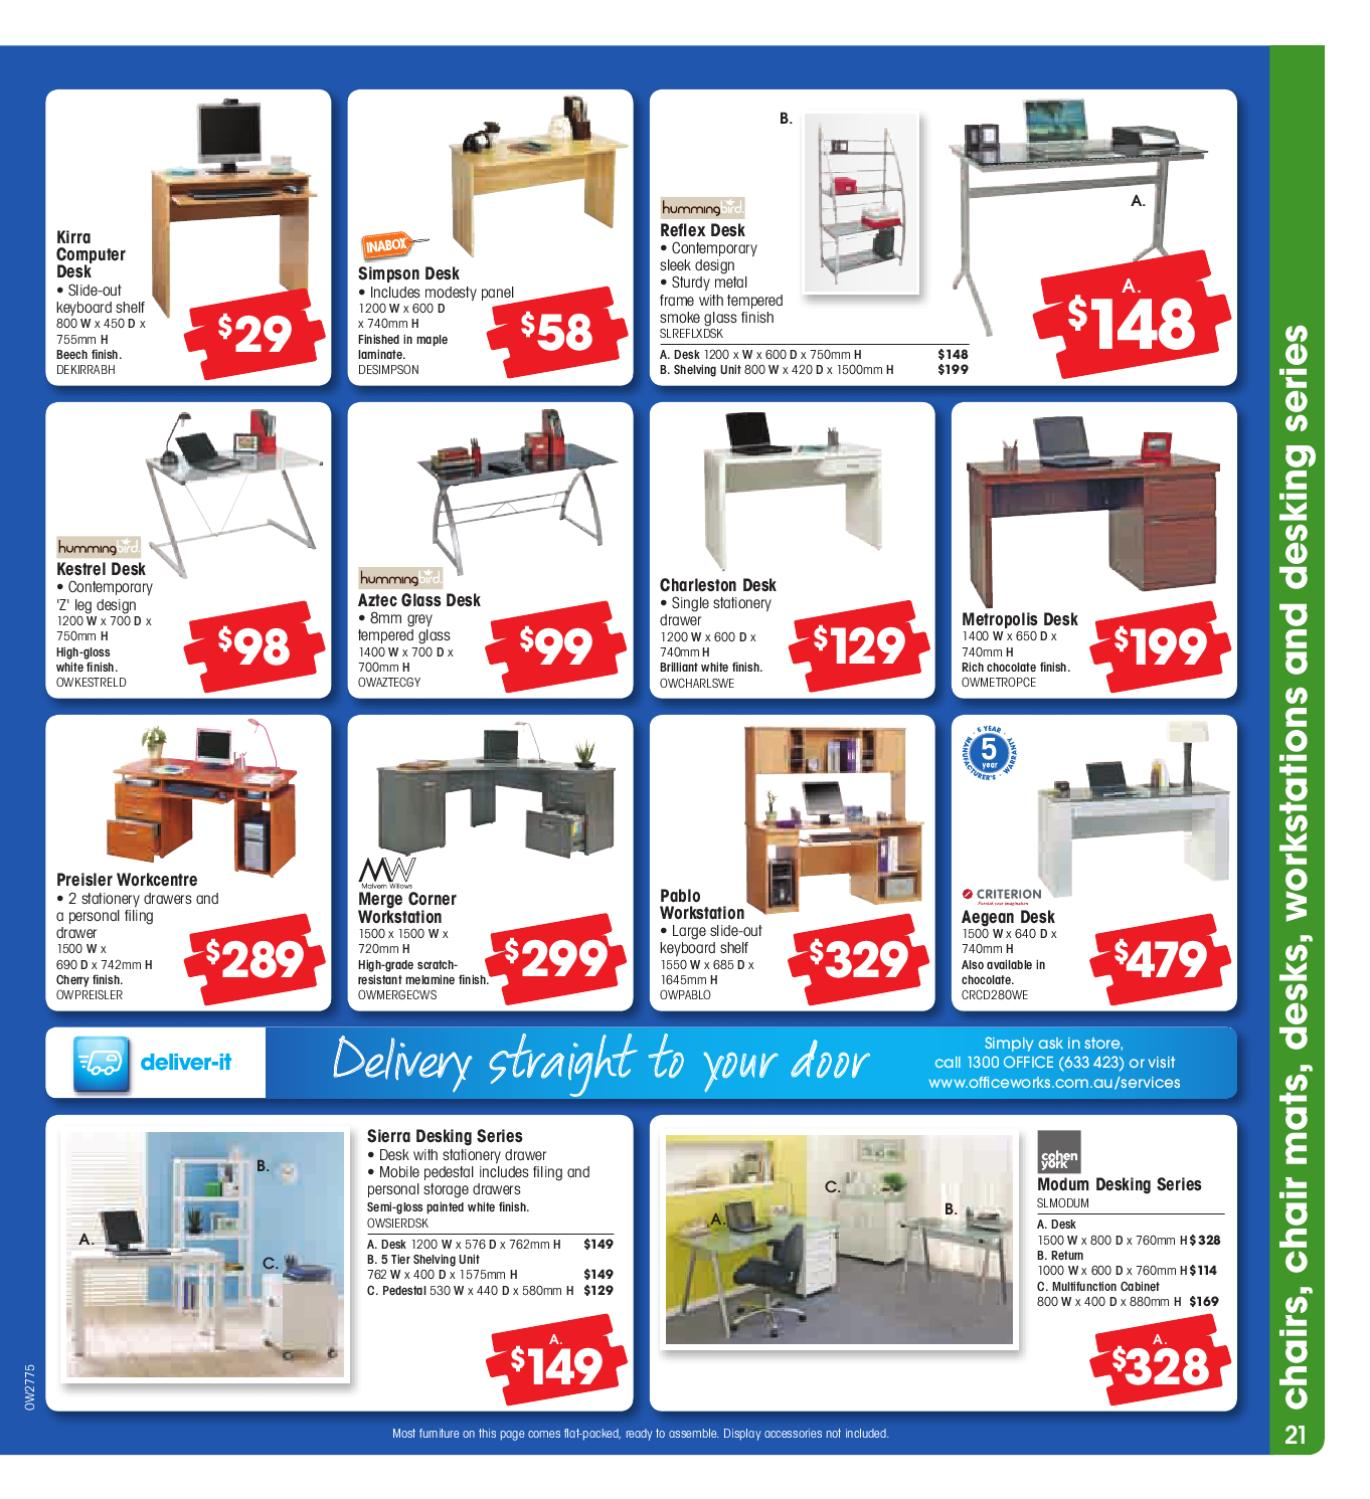 Officeworks August 2010 Catalogue by Atomic Media - issuu